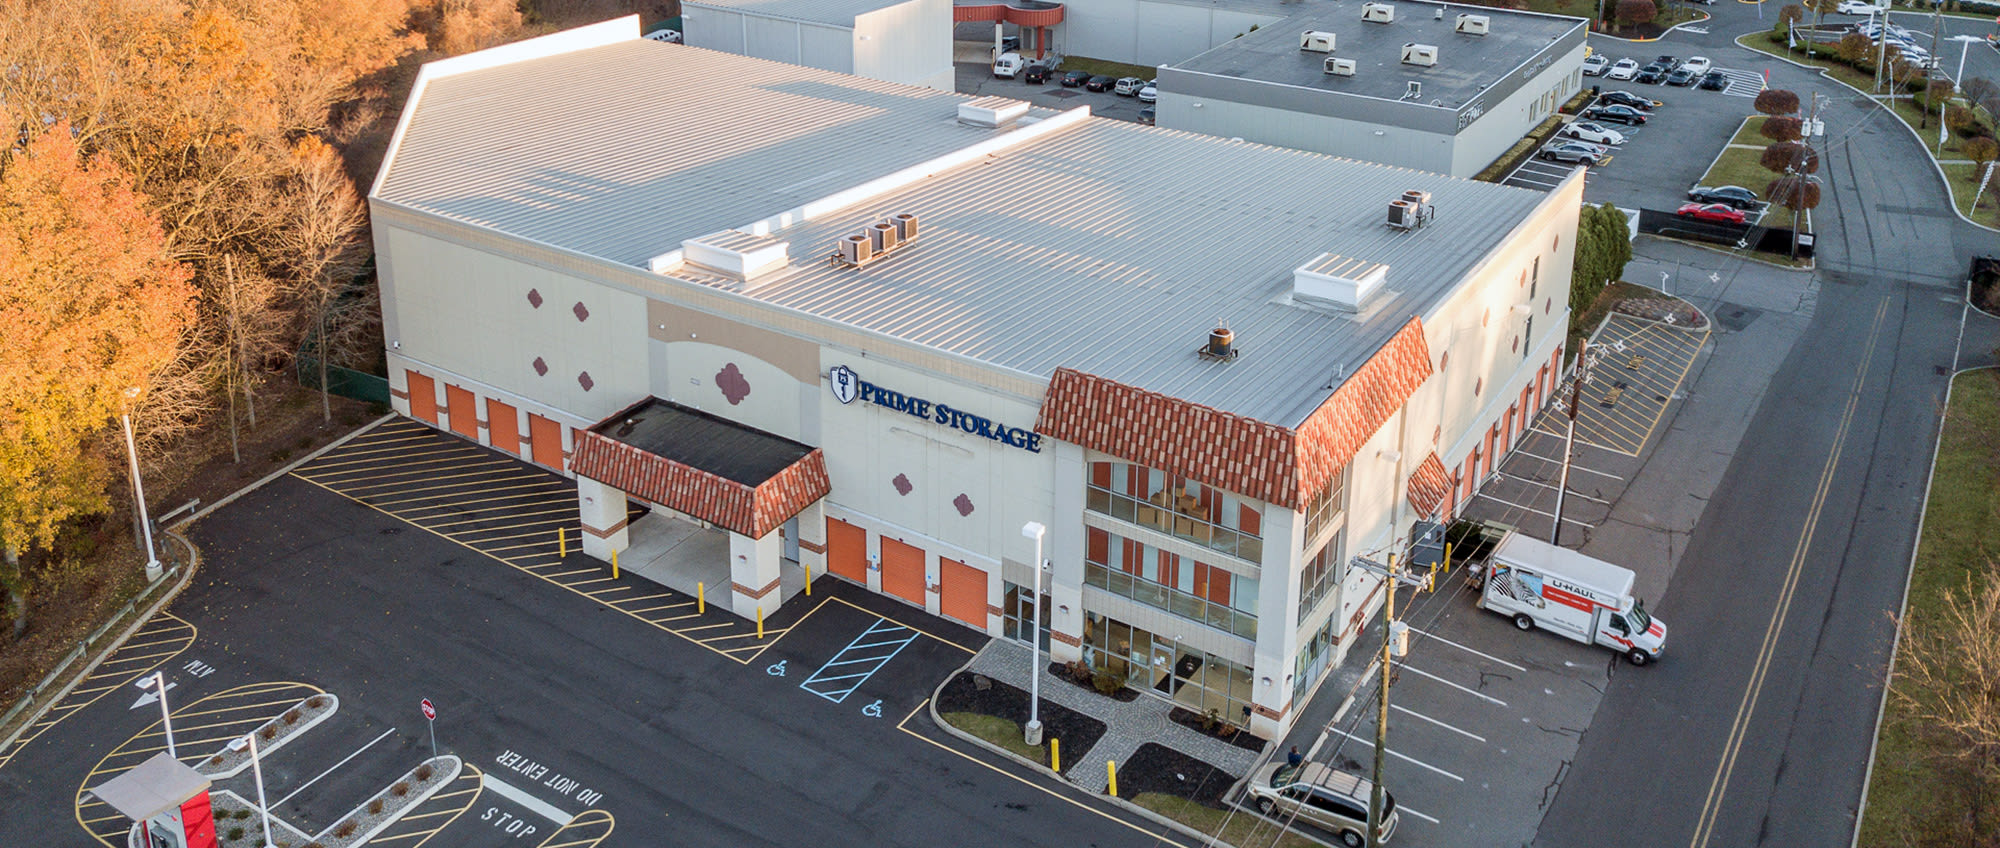 Aerial view of Prime Storage in Saratoga Springs, NY